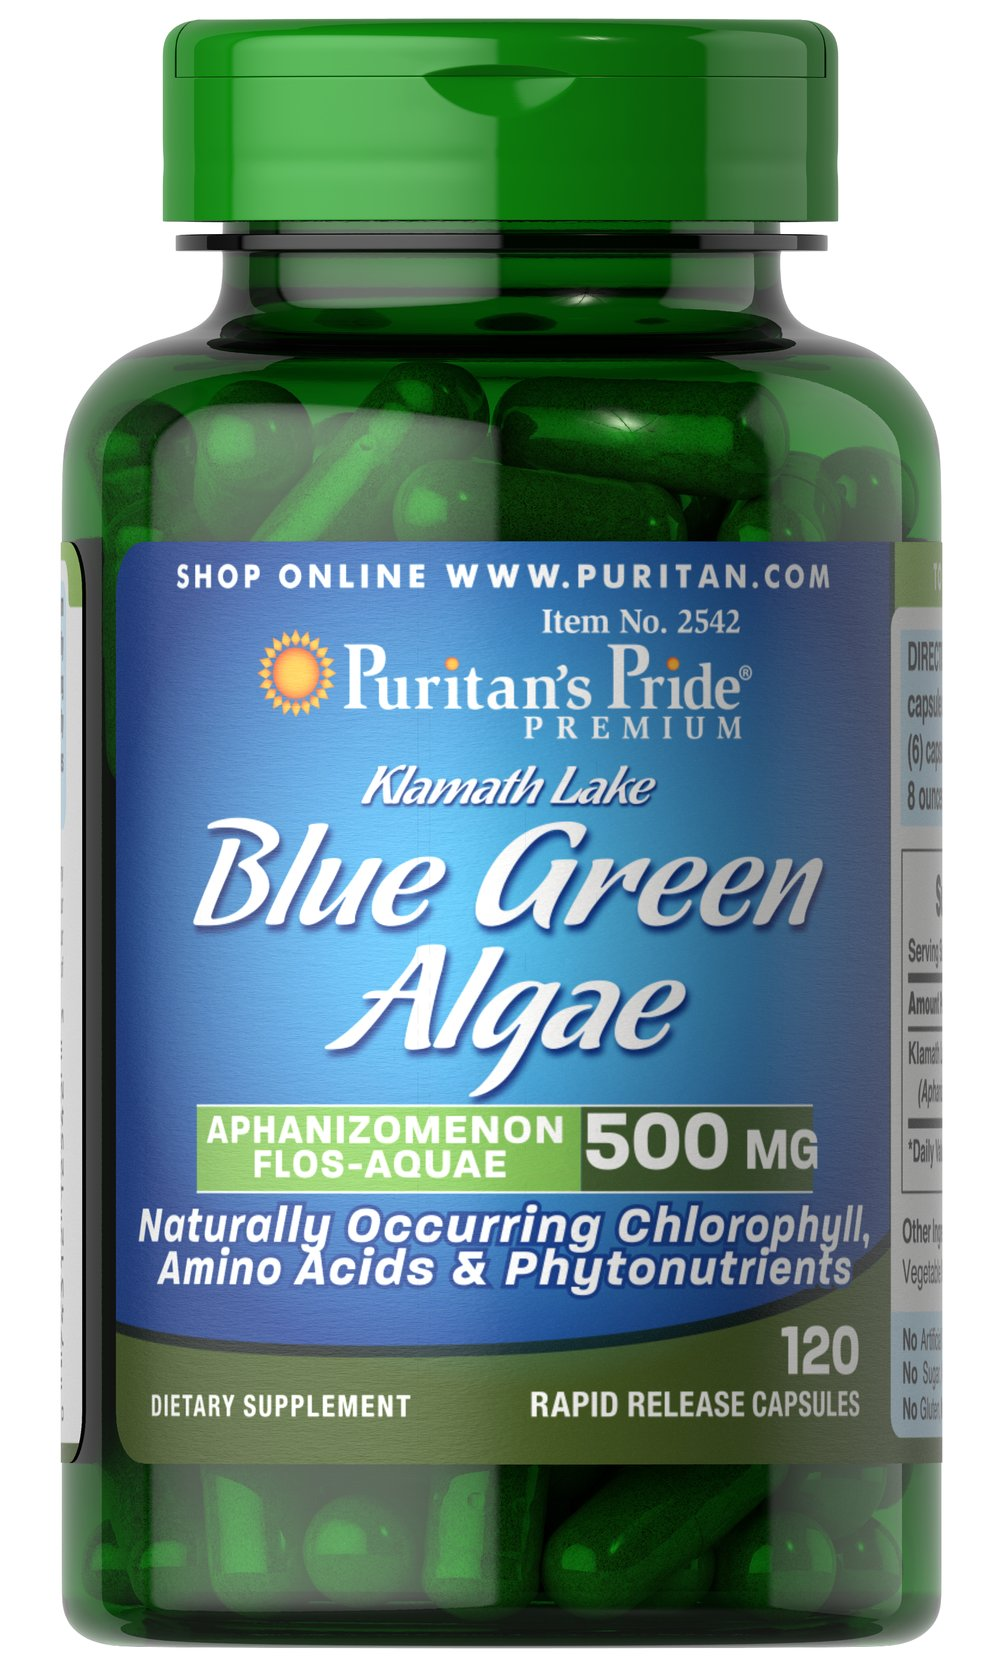 Klamath Lake Blue Green Algae 500 mg